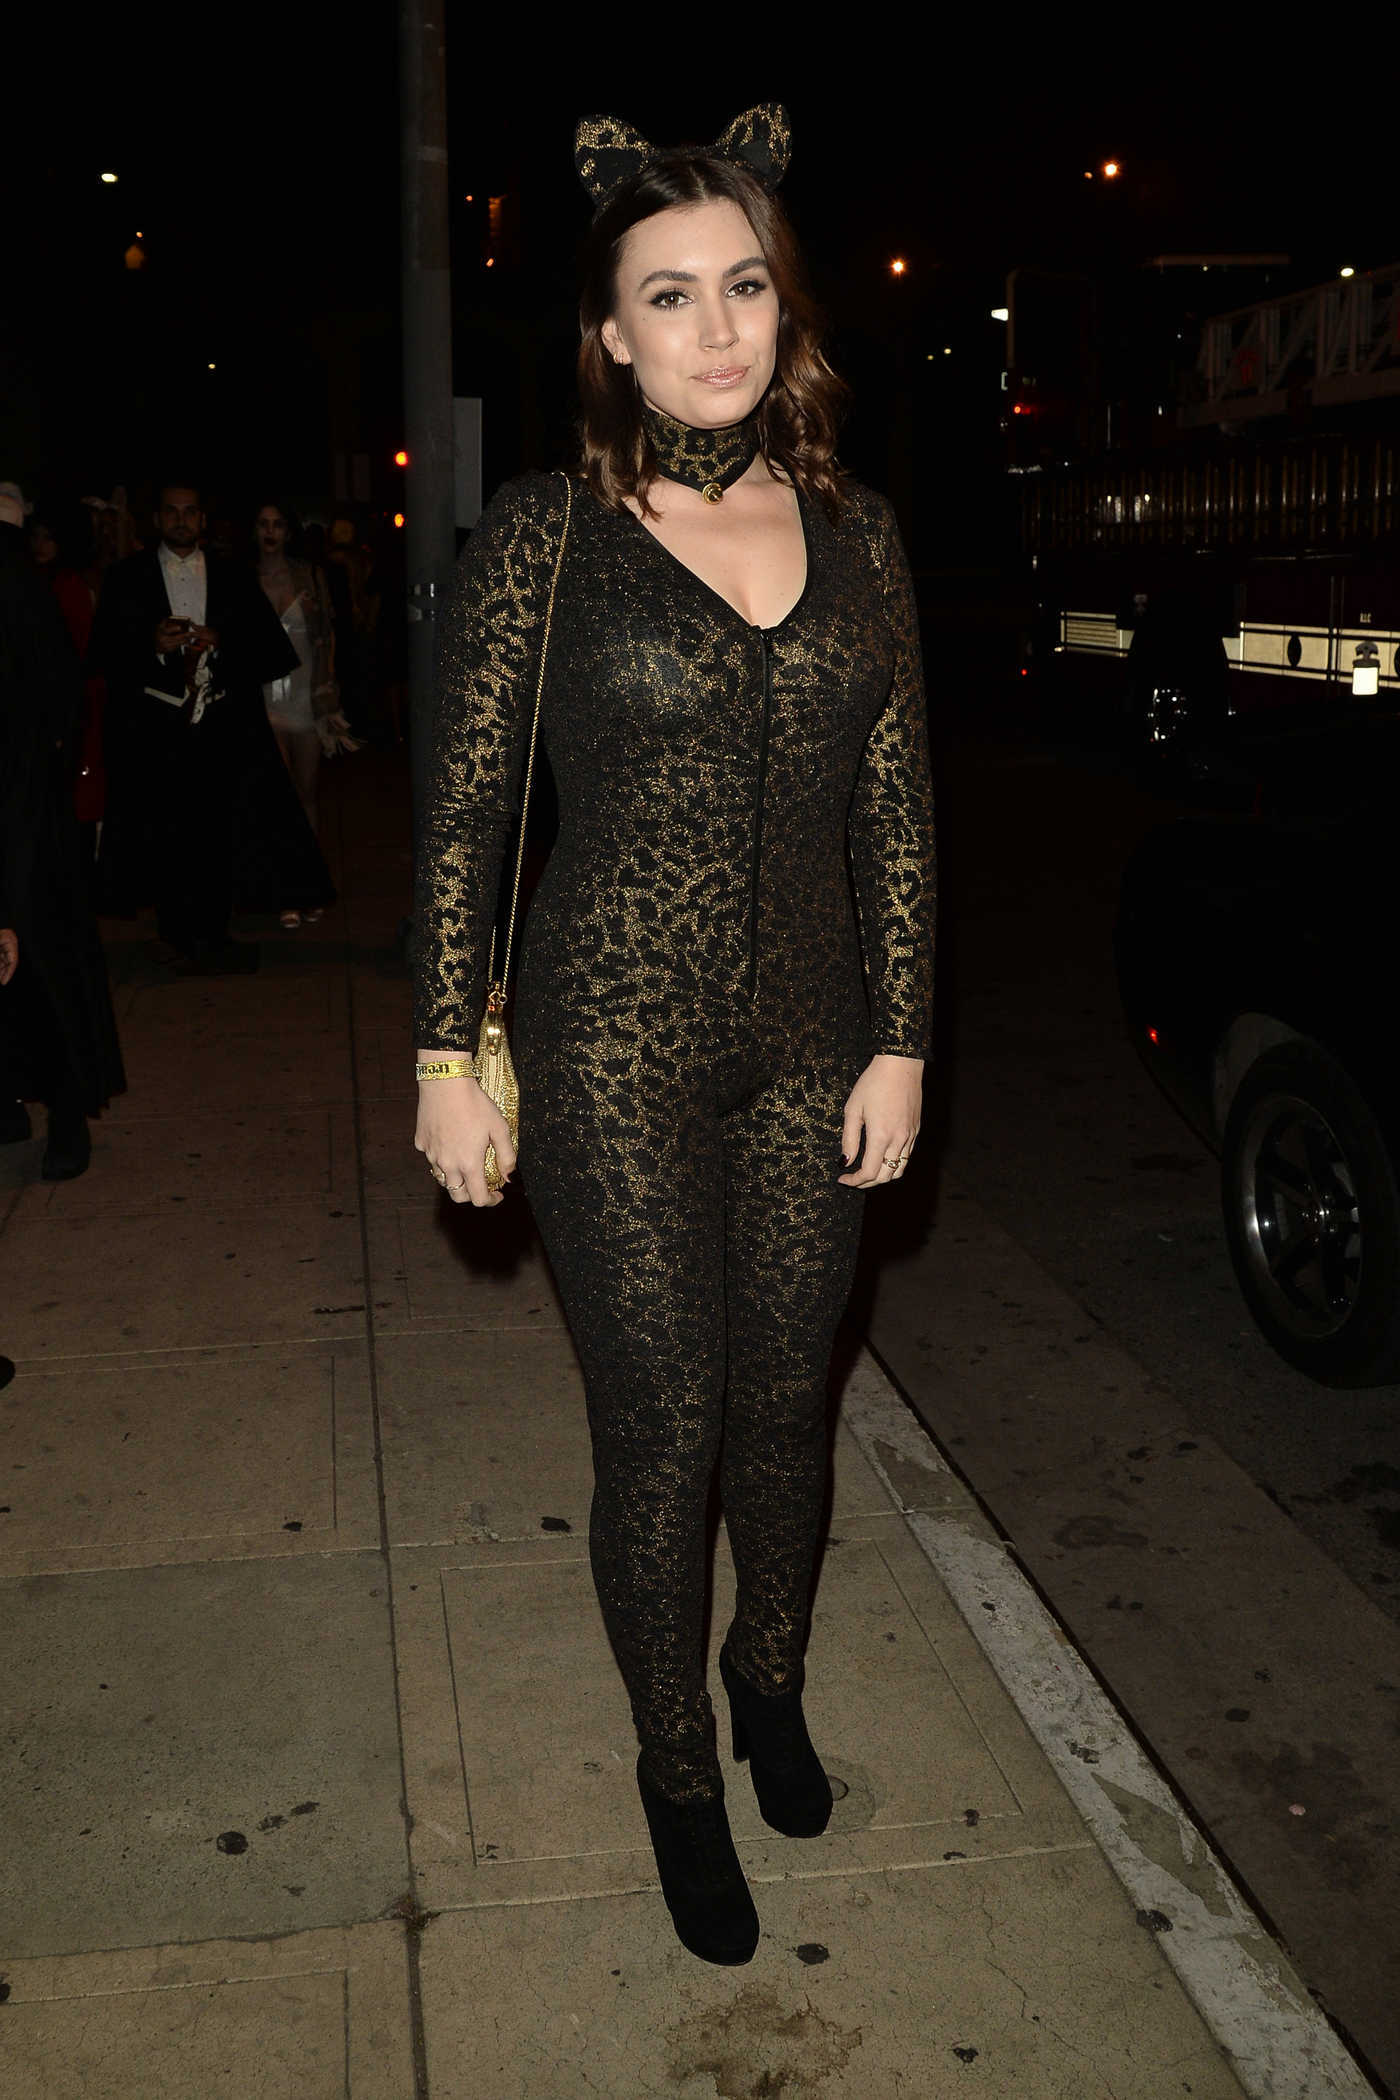 Sophie Simmons at the 6th Annual Treats Magazine Halloween Party in Los Angeles 10/29/2016